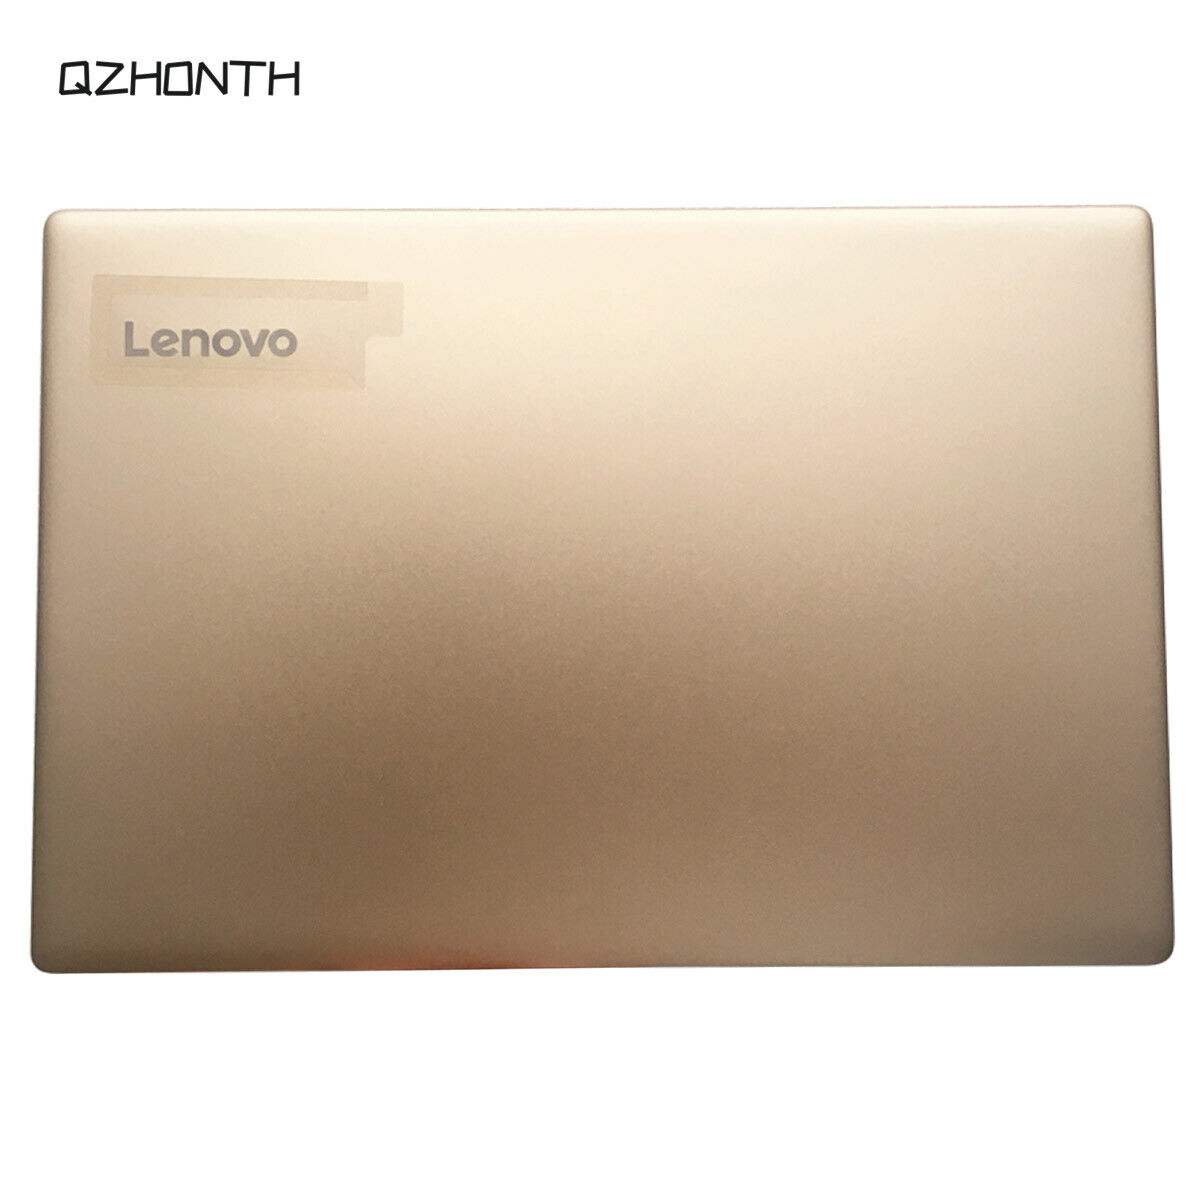 New For Lenovo IdeaPad 7000-13isk 320s-13 320S-13ikb LCD Back Cover Rear Lid